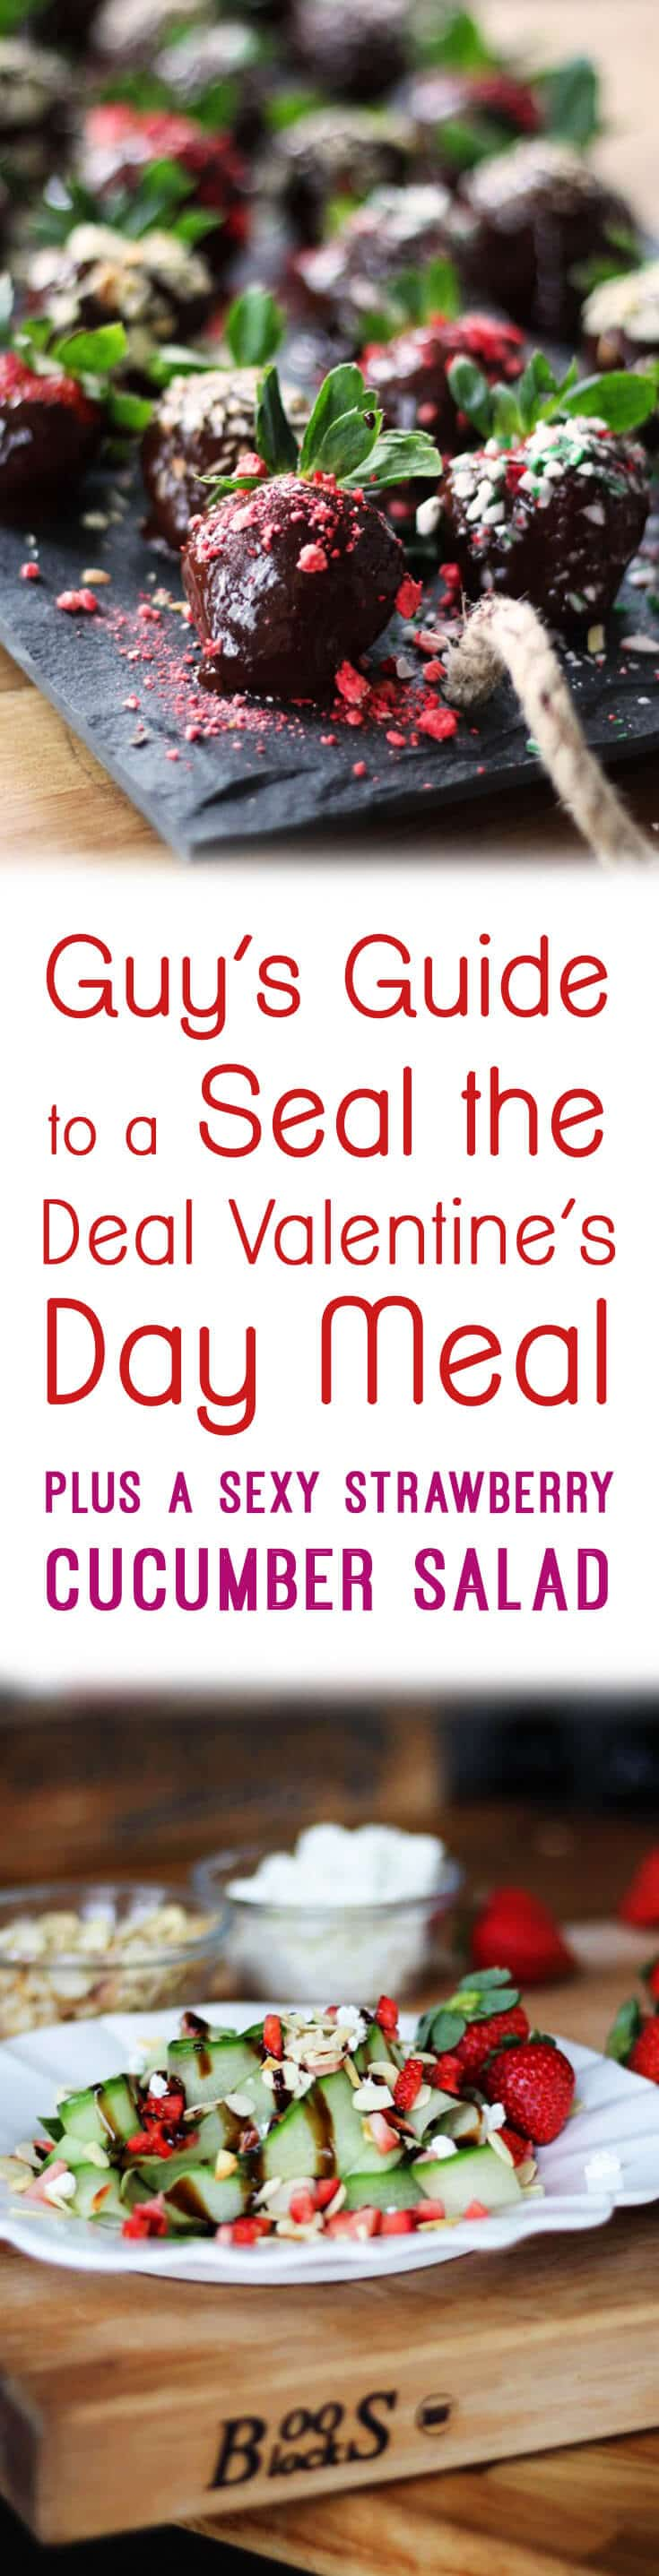 Valentine's Day is right around the corner, and if you don't want to screw it up I recommend you read this. I have some DO's and DON'Ts plus a Sexy Strawberry Cucumber Salad recipe.